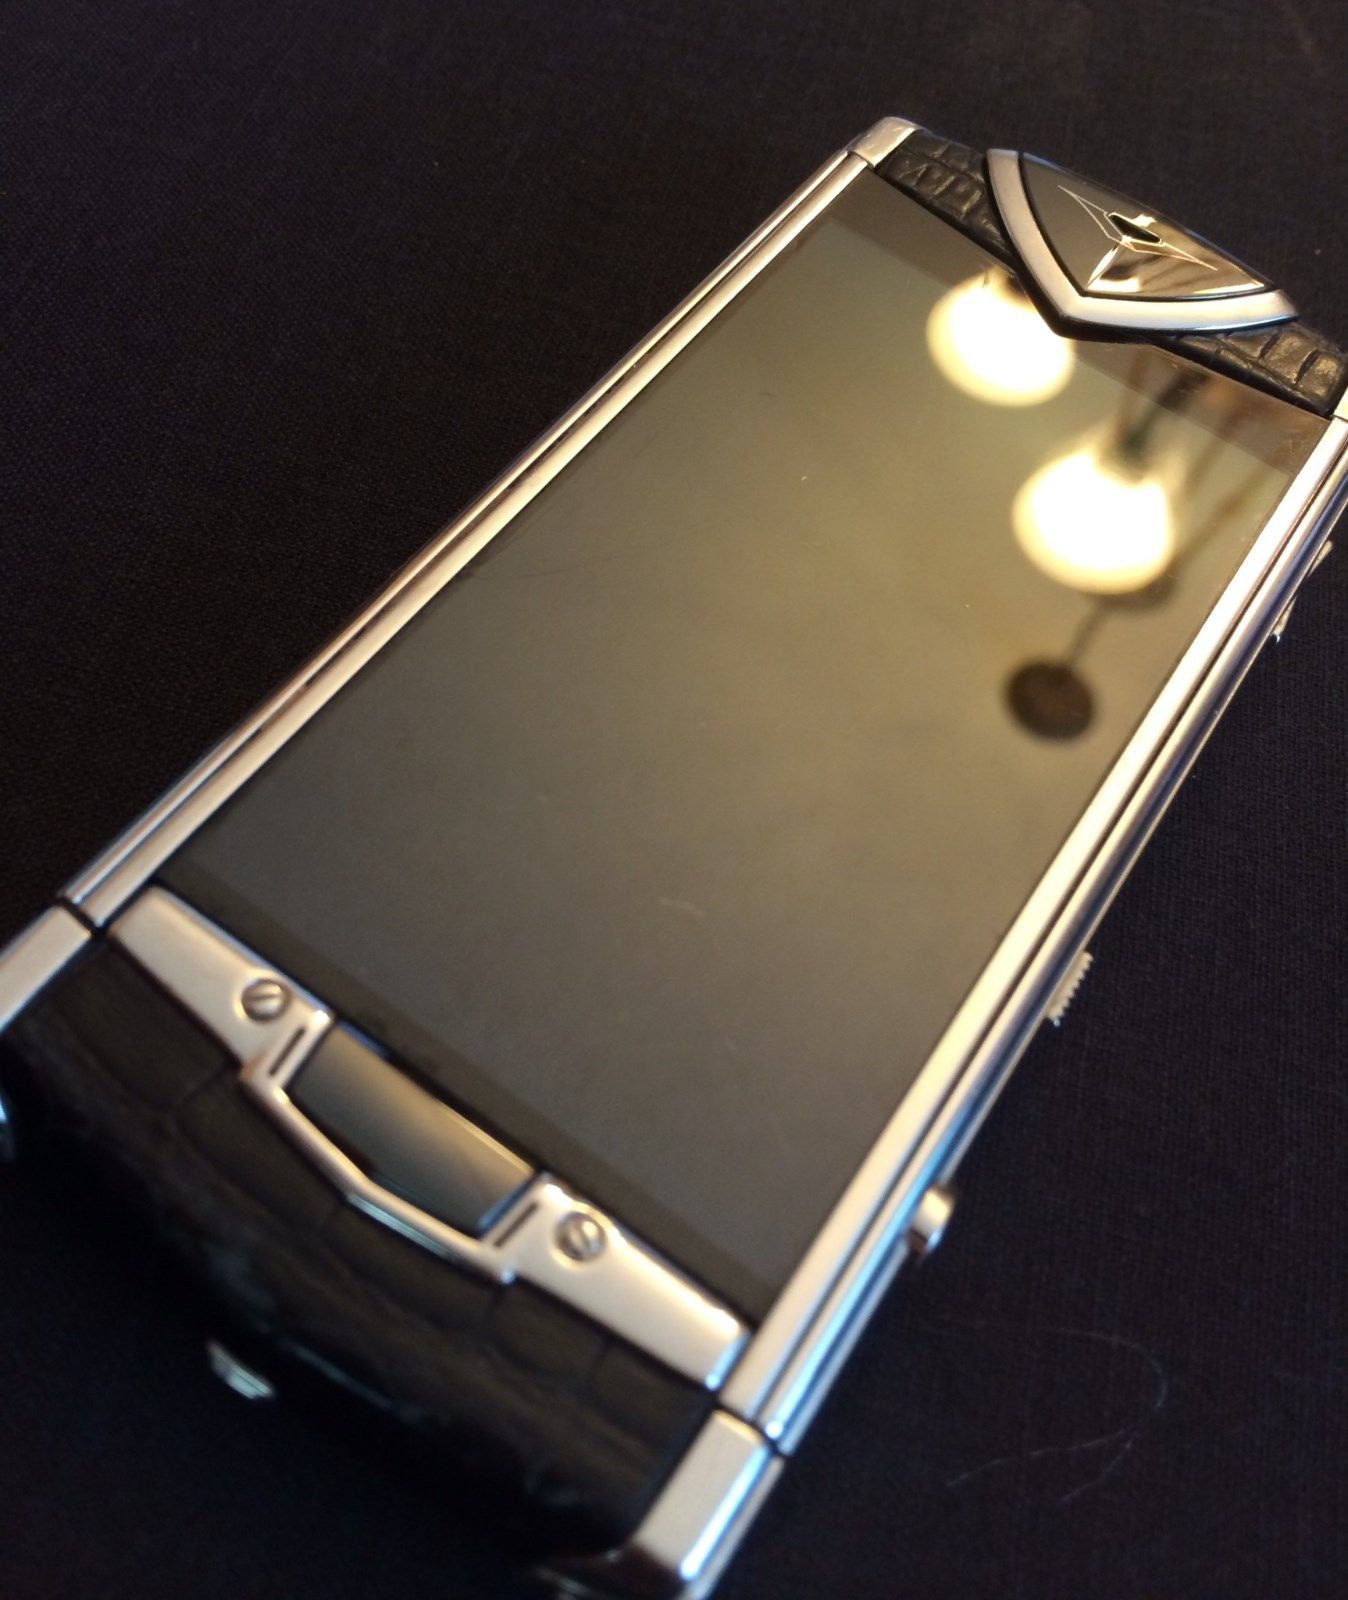 Vertu Constellation Touch screen Black Alligator Leather